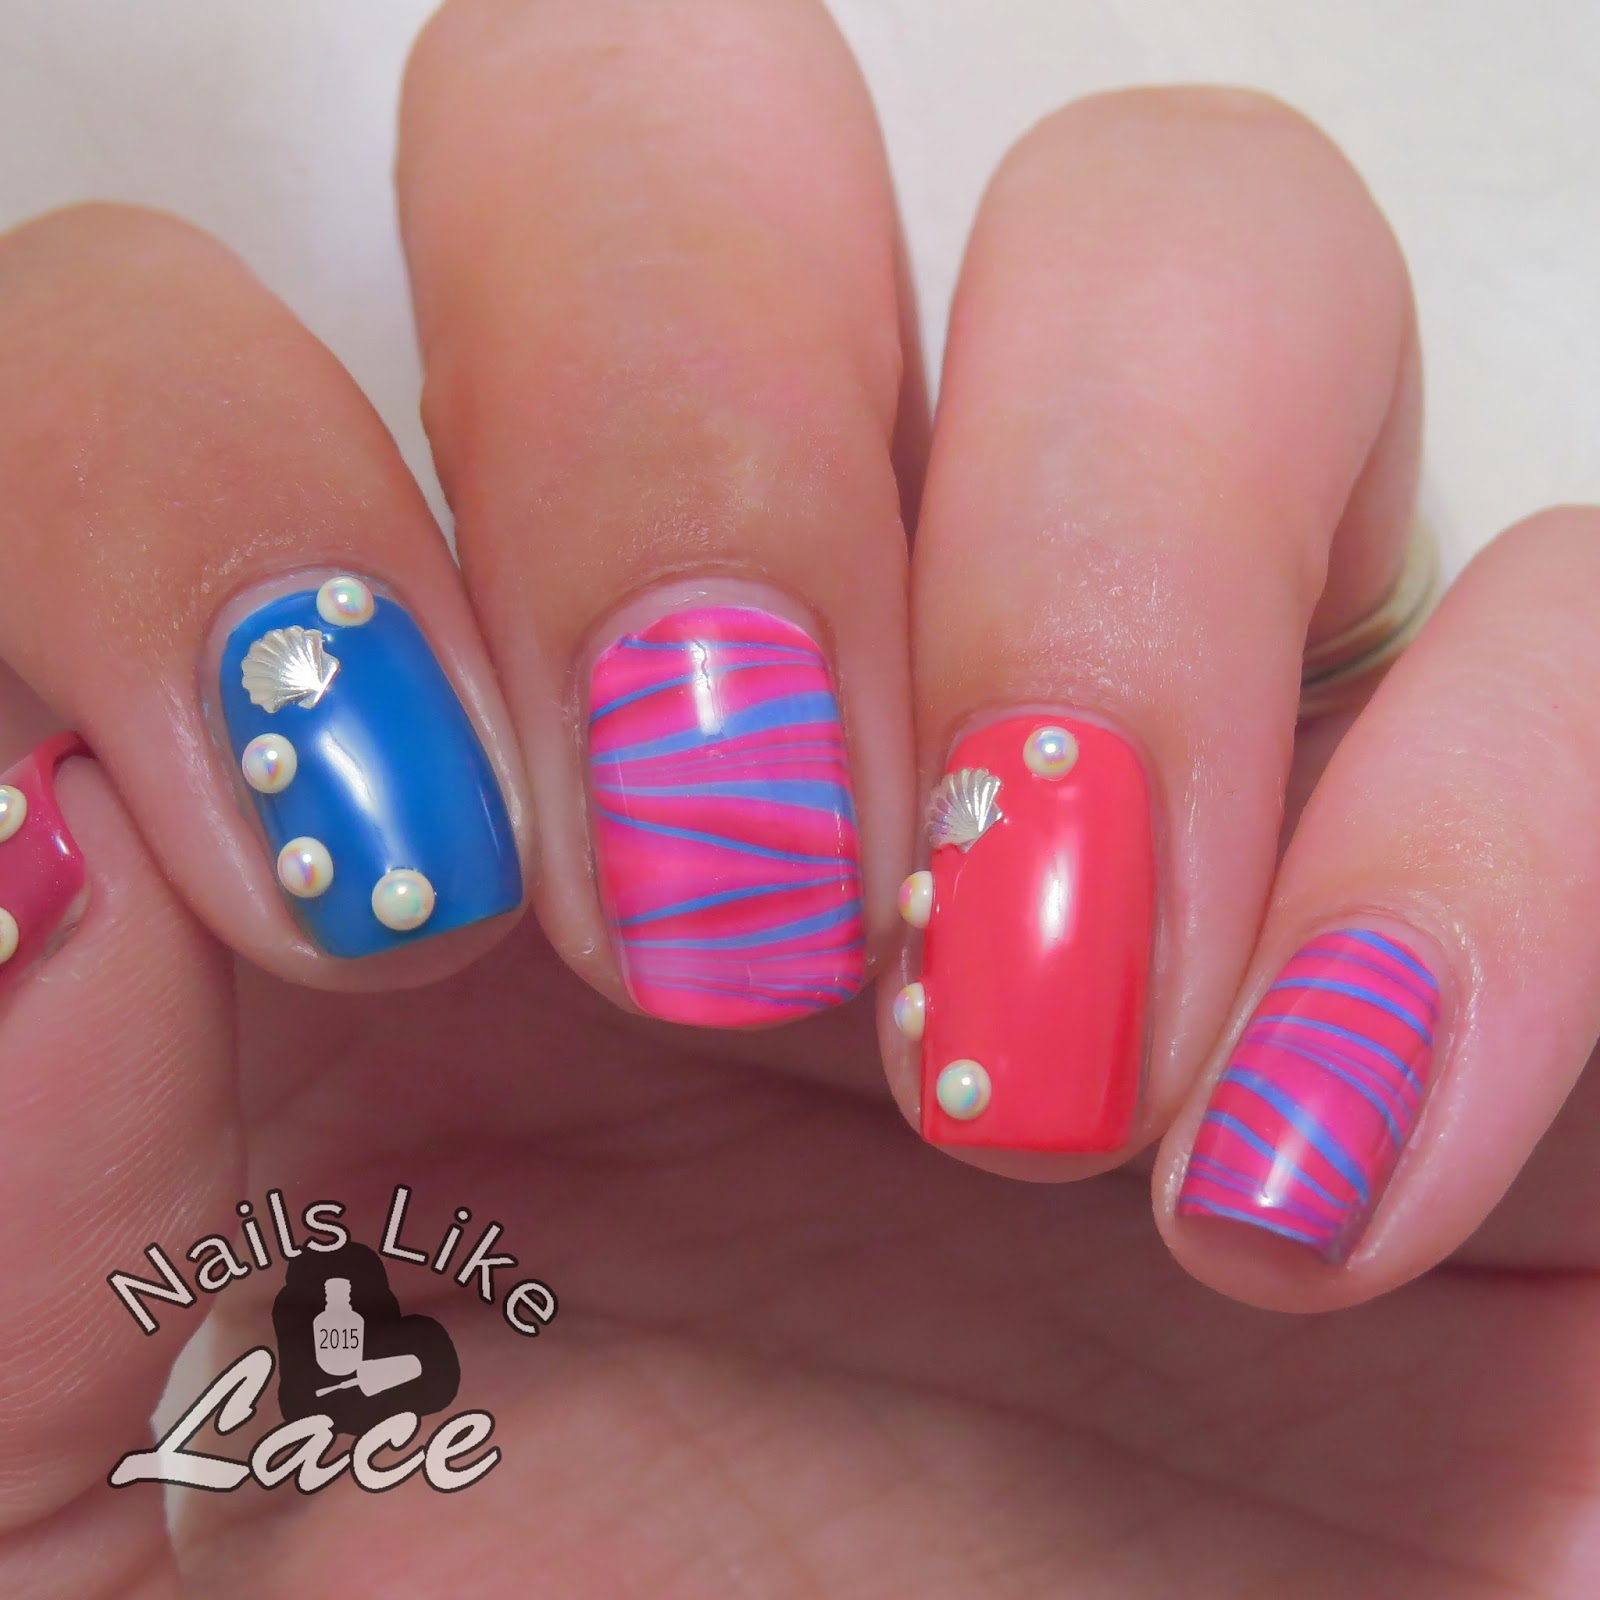 Nail Art Subscription Box: NailsLikeLace: Nail Glam By Jovee Co.'s Monthly